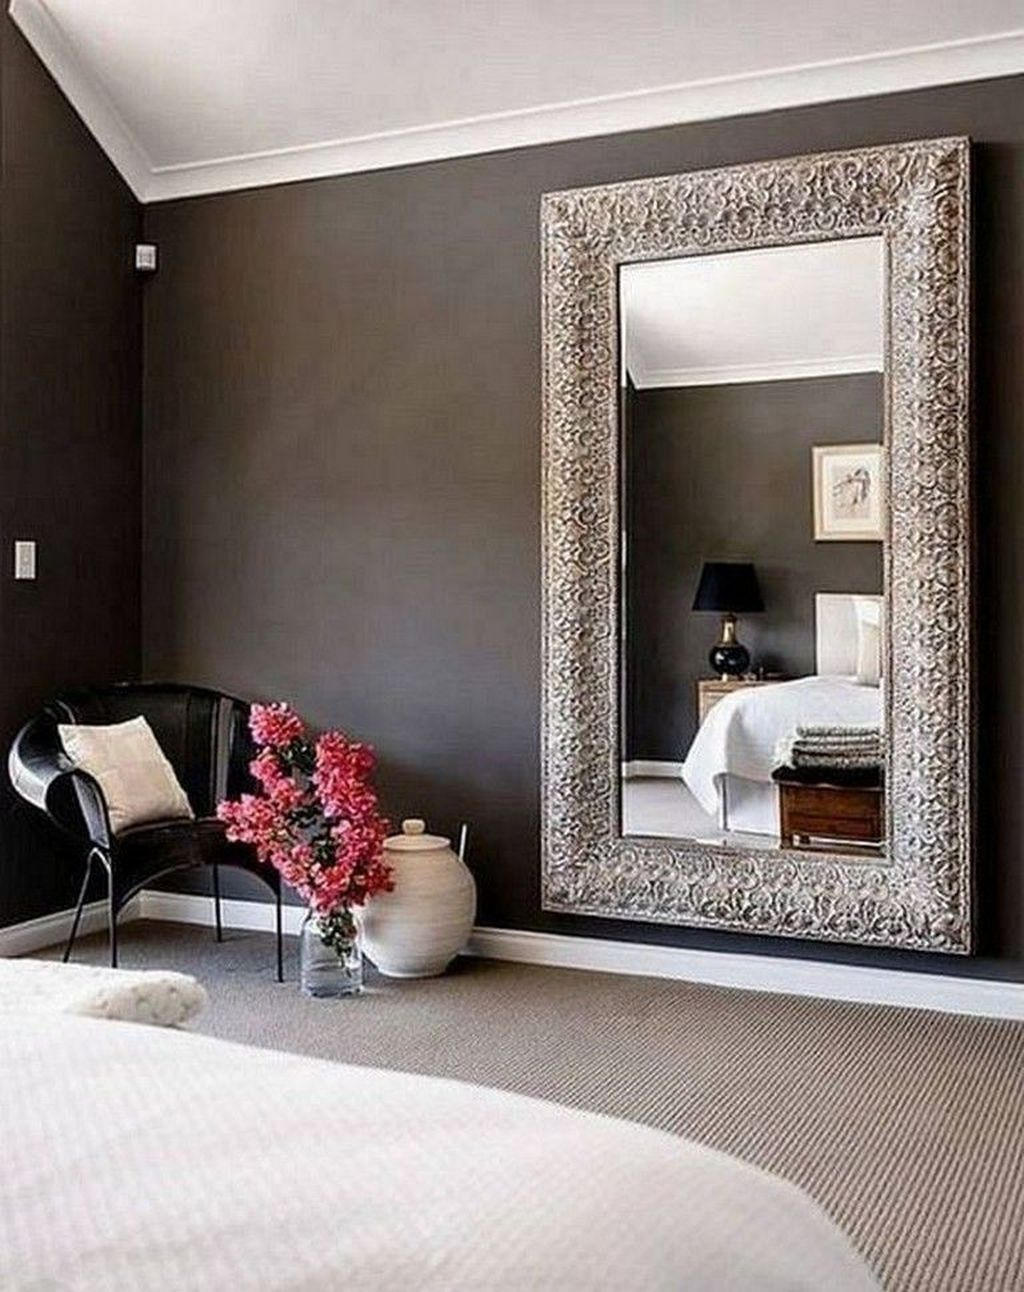 34 Popular Mirror Wall Decor Ideas Best For Living Room In 2020